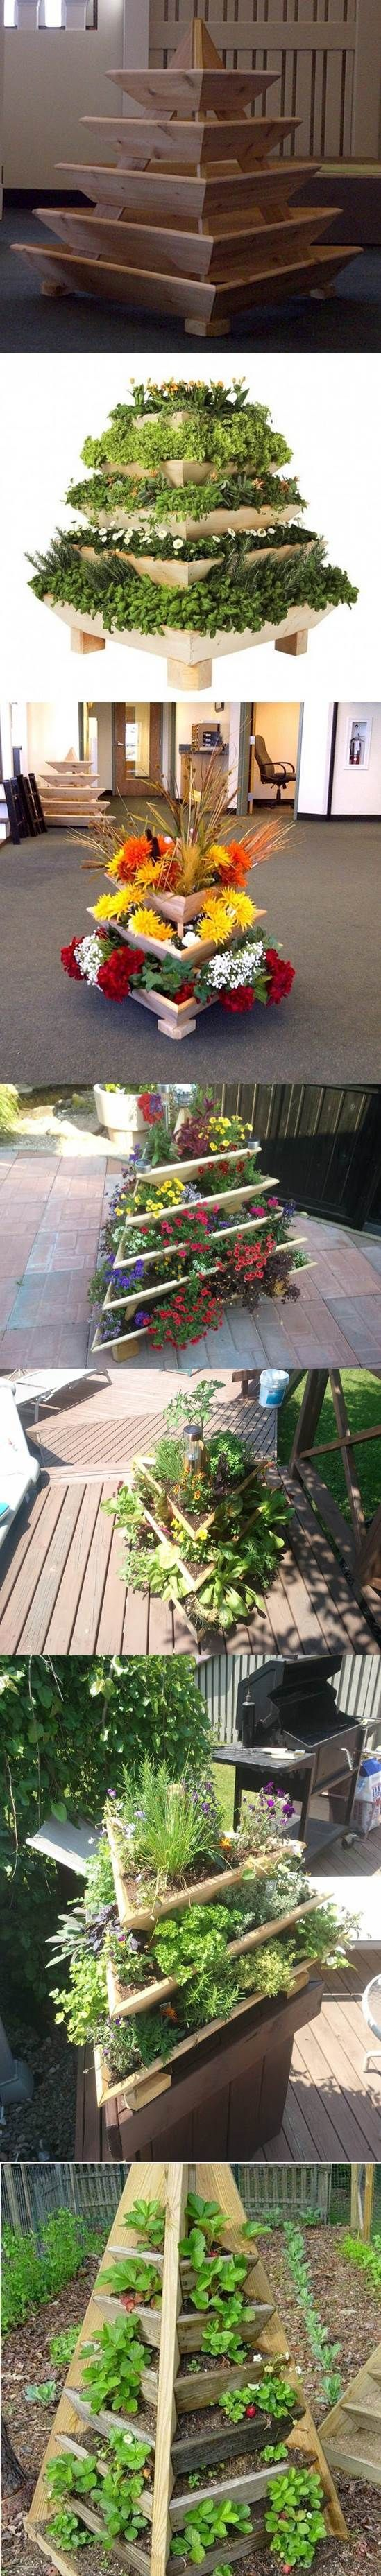 Creative Idea of Home Gardening - Triolife Plant Pyramid.